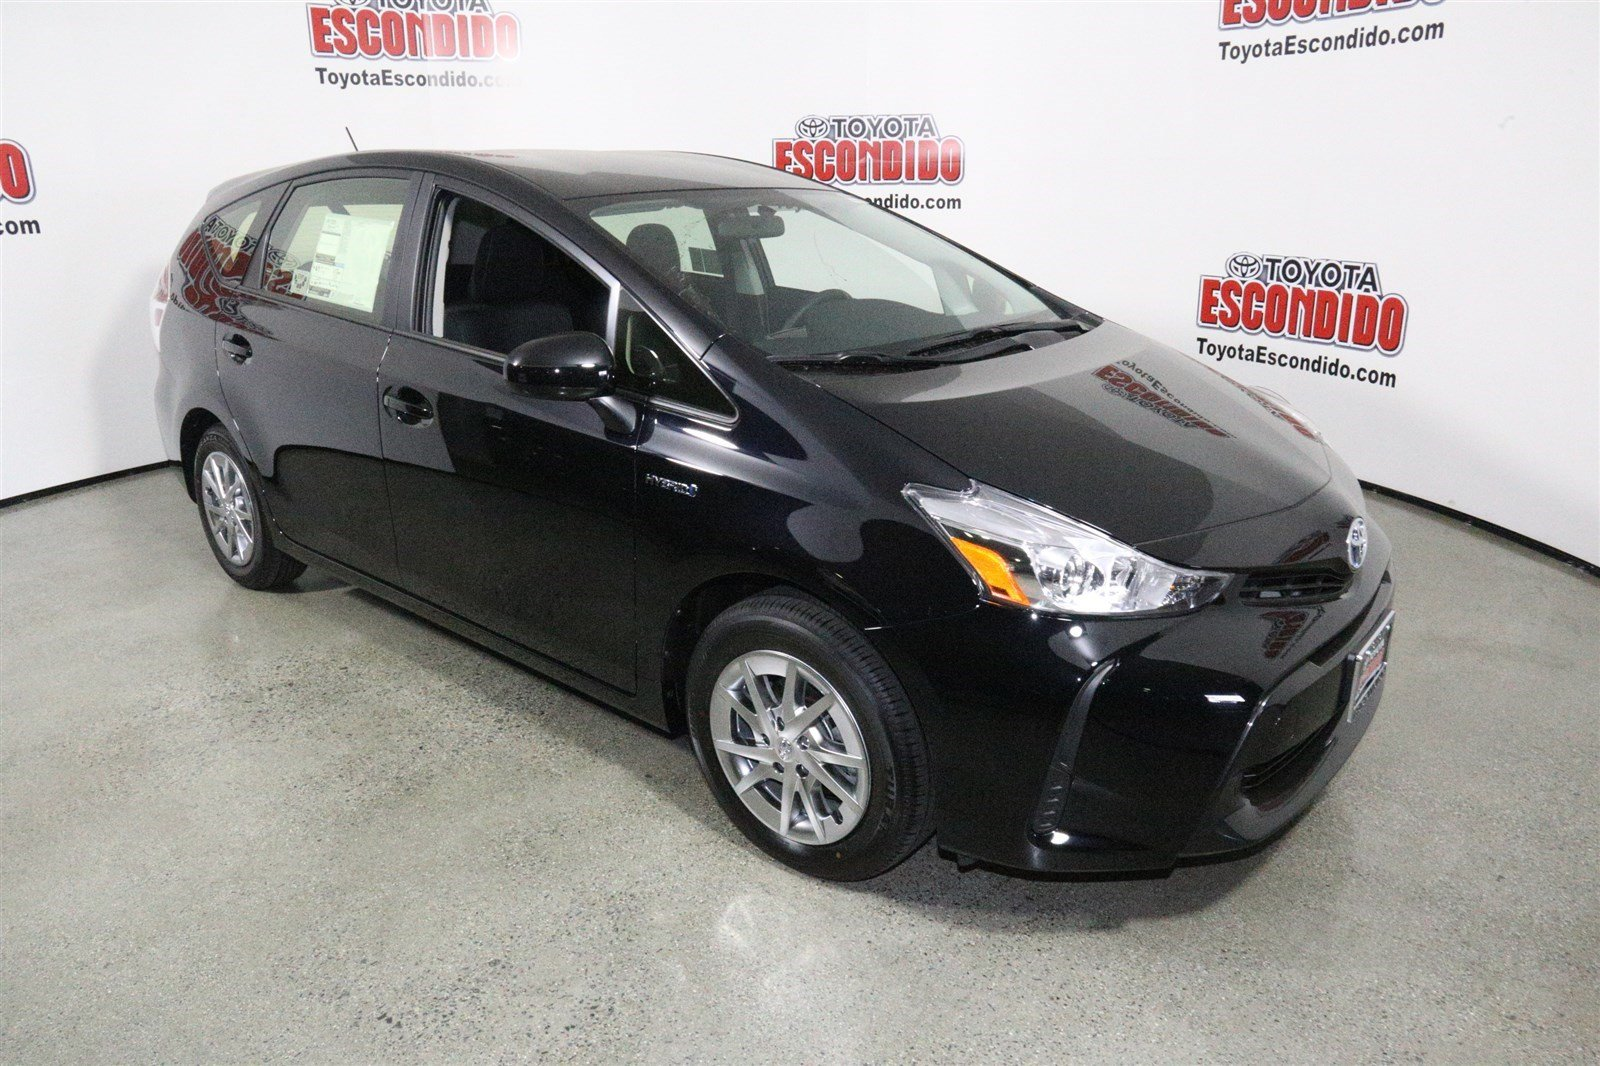 new 2017 toyota prius v two station wagon in escondido 1012737 toyota of escondido. Black Bedroom Furniture Sets. Home Design Ideas